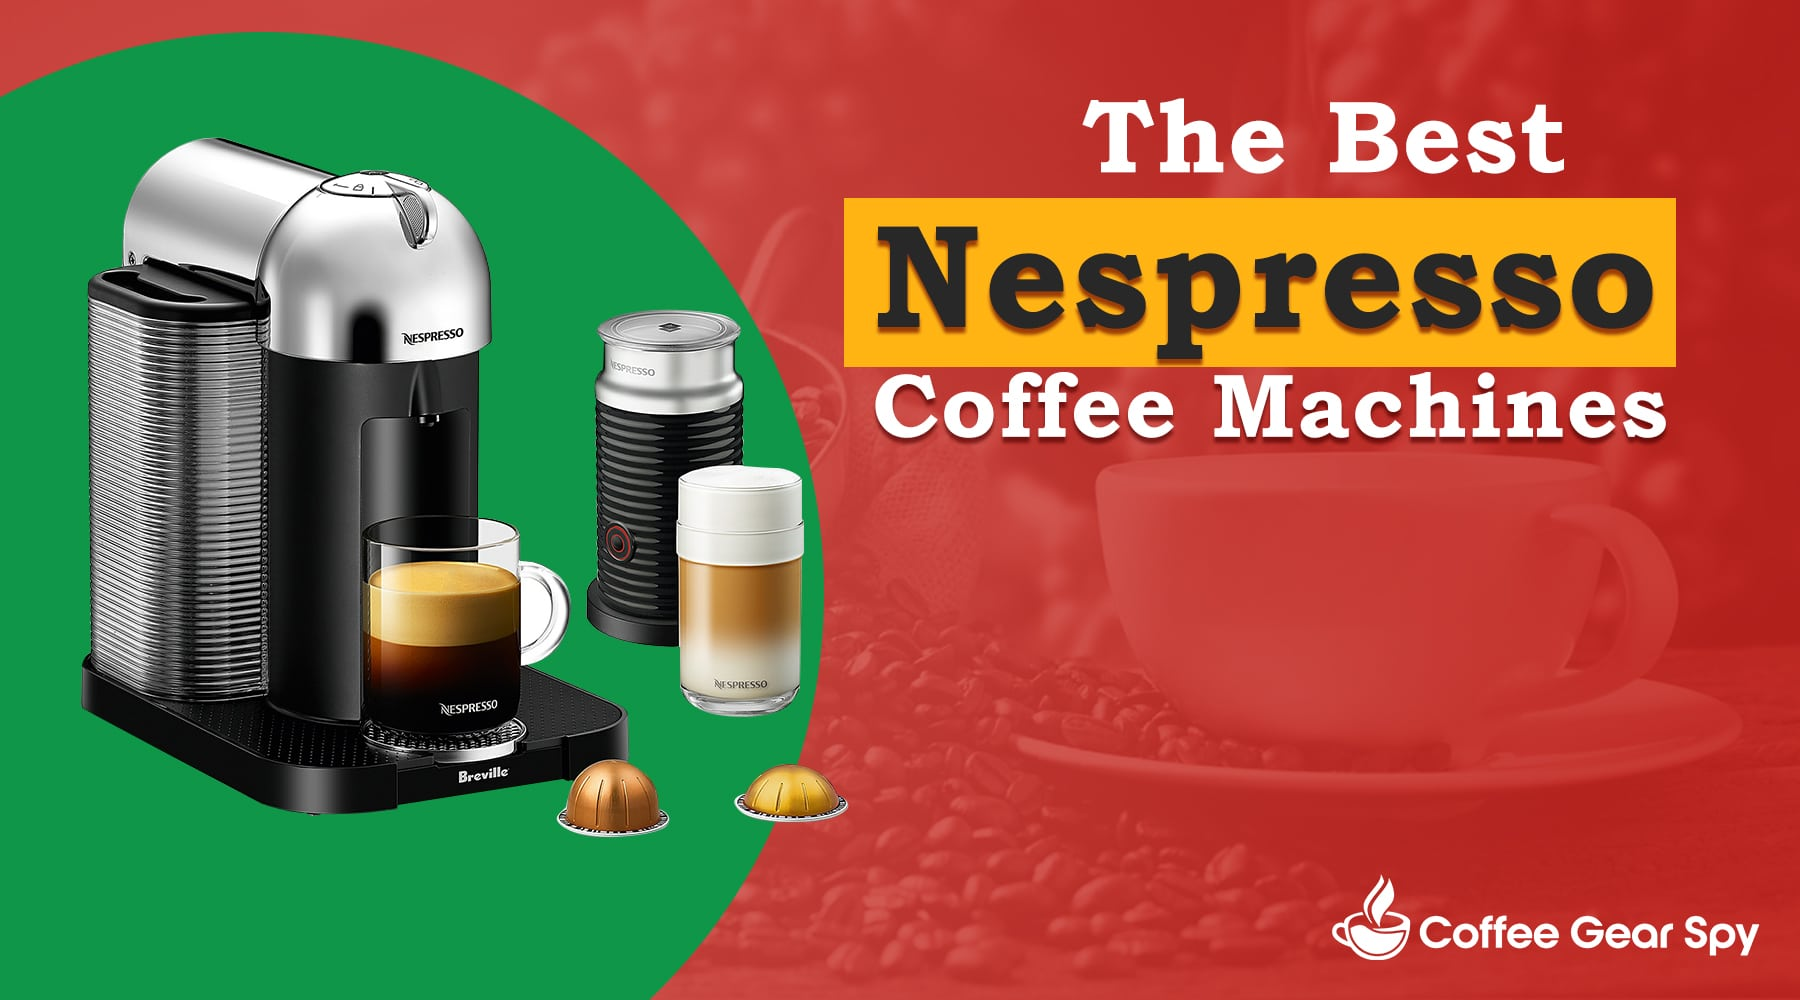 What's The Best Nespresso Coffee Machine? We Review Five Of The Best